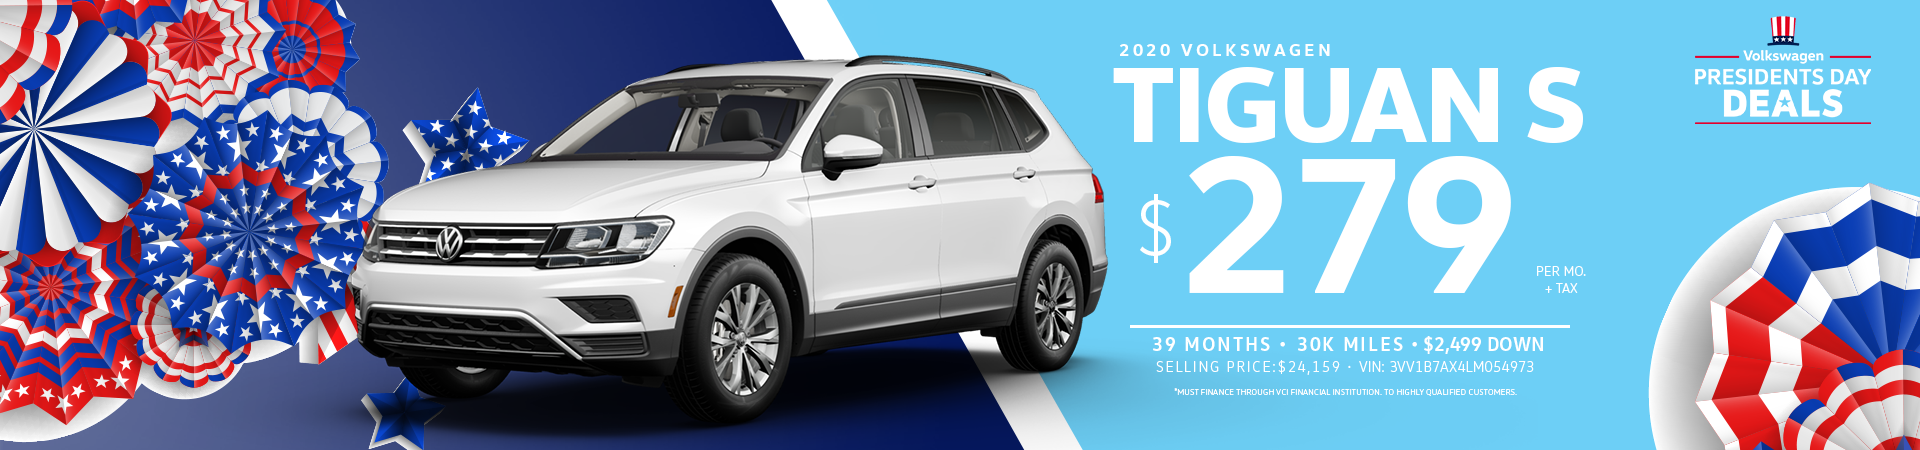 Lease a 2020 Tiguan S for $279 a month